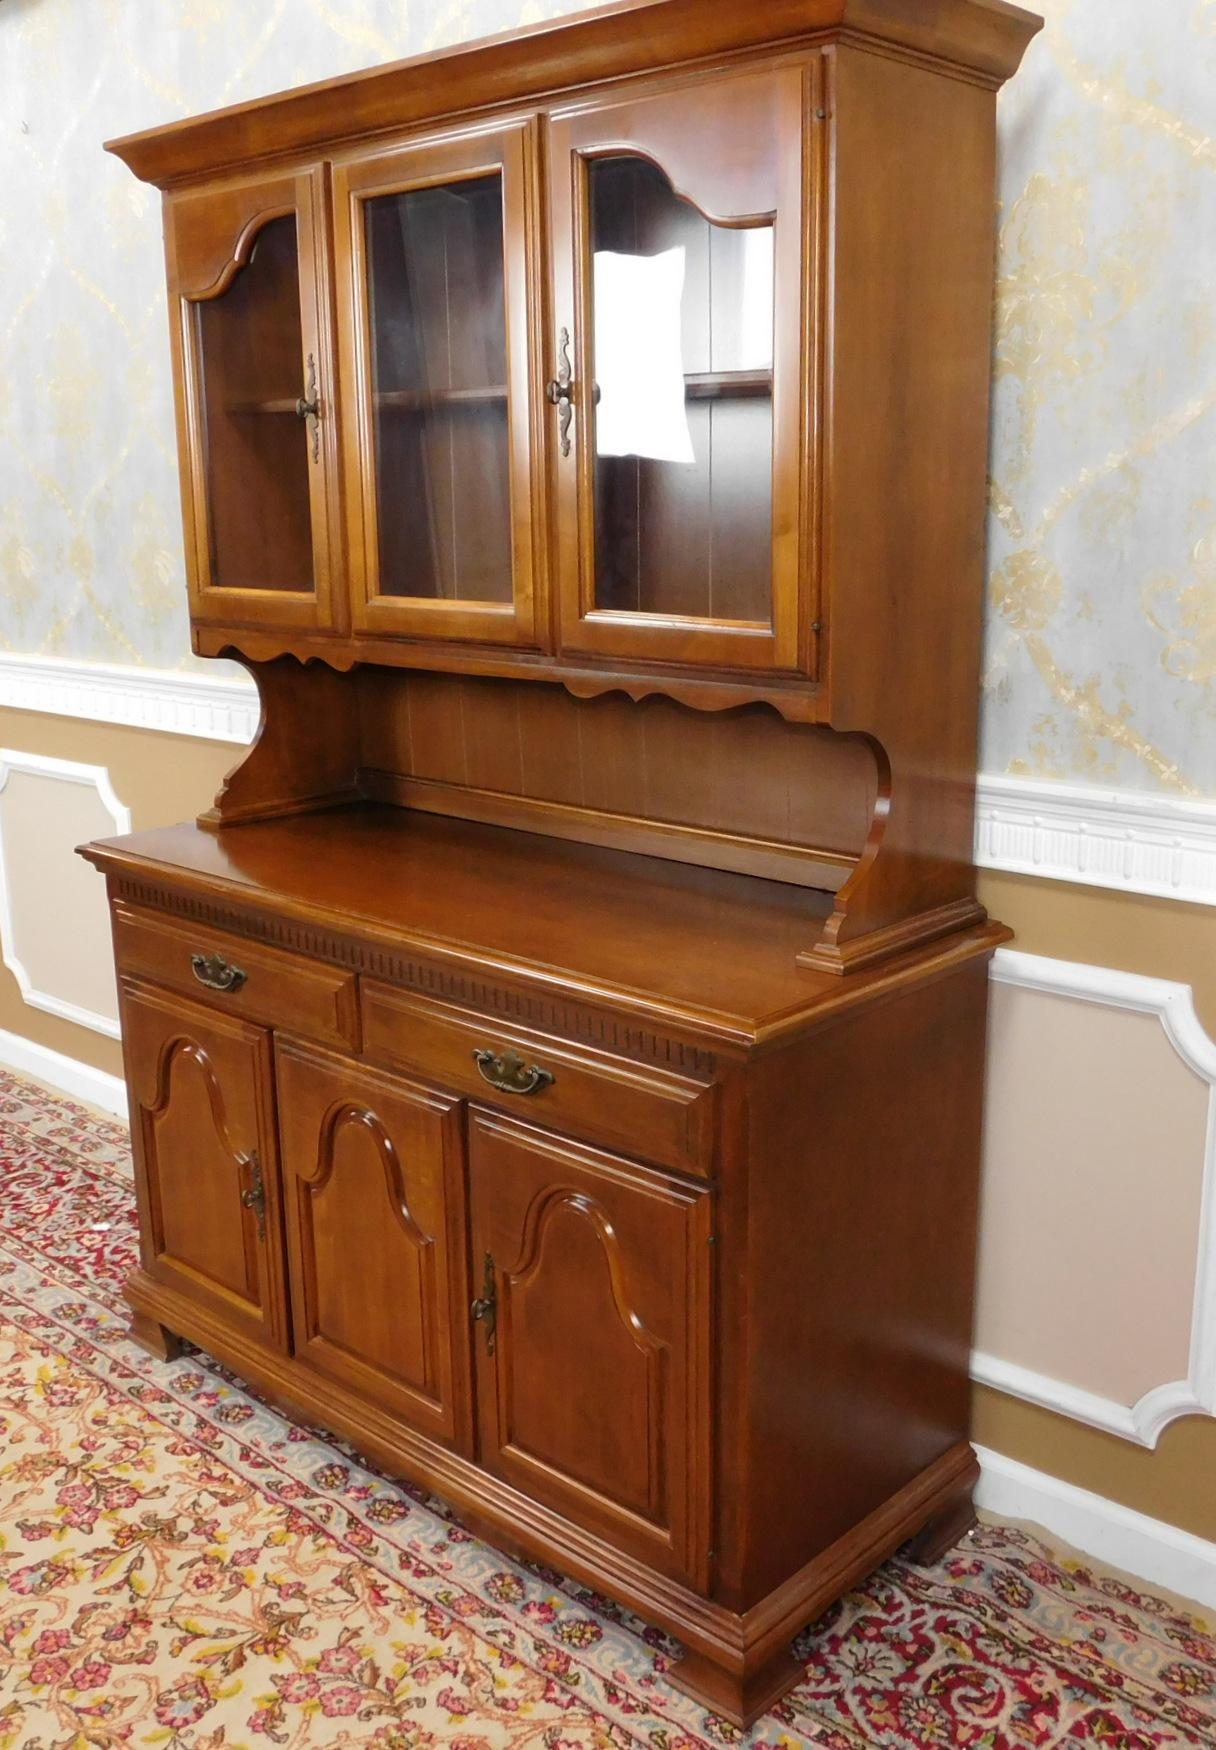 1980s Solid Maple Dining Room Kitchen China Cabinet Hutch For Sale  Image 5 Of